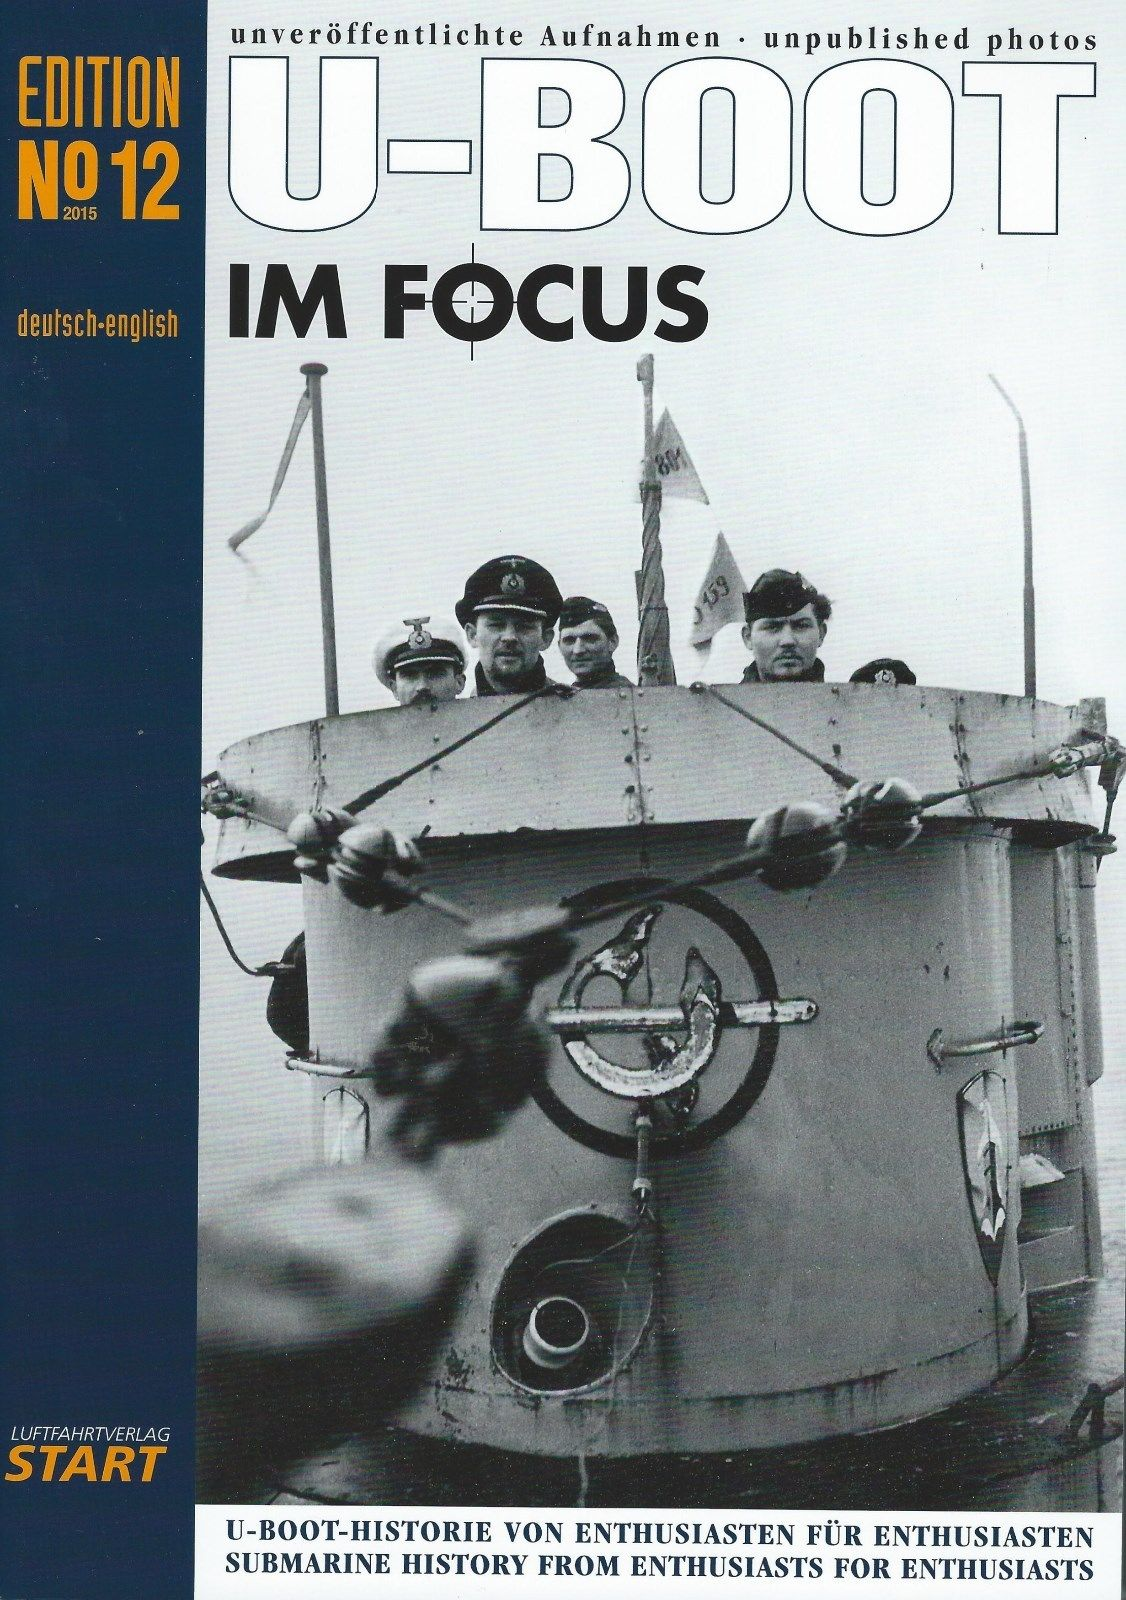 U-Boot im Focus Edition 12